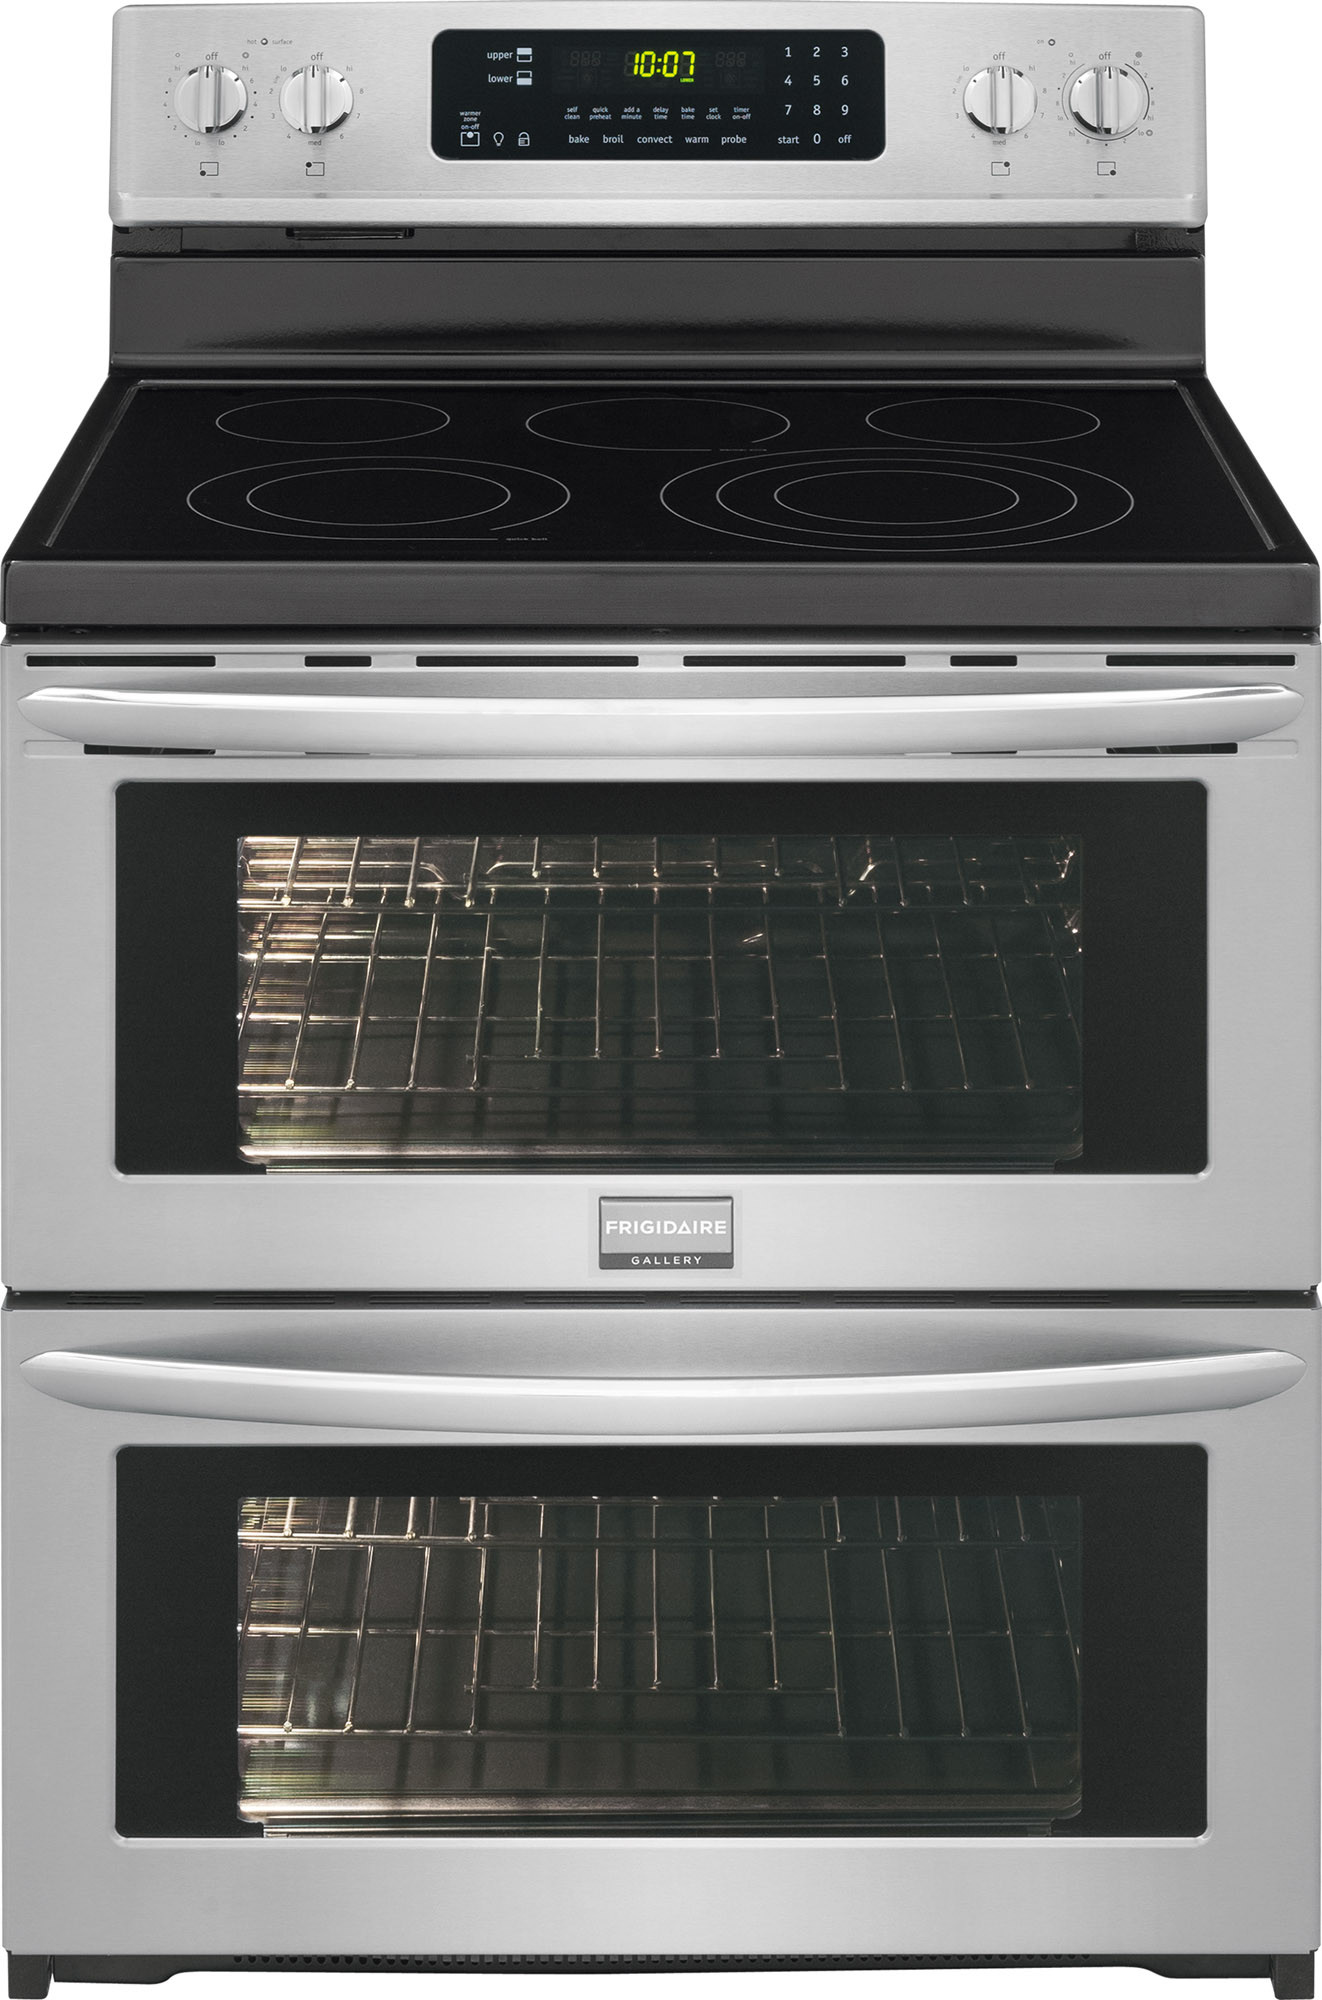 Frigidaire Fgef306tpf 30 Inch Double Oven Electric Range With True Convection Quick Preheat Temperature Probe Self Clean Quick Boil Warm Zone Power Broil Add A Minute Button 7 2 Cu Ft Oven Capacity 5 Heating Elements